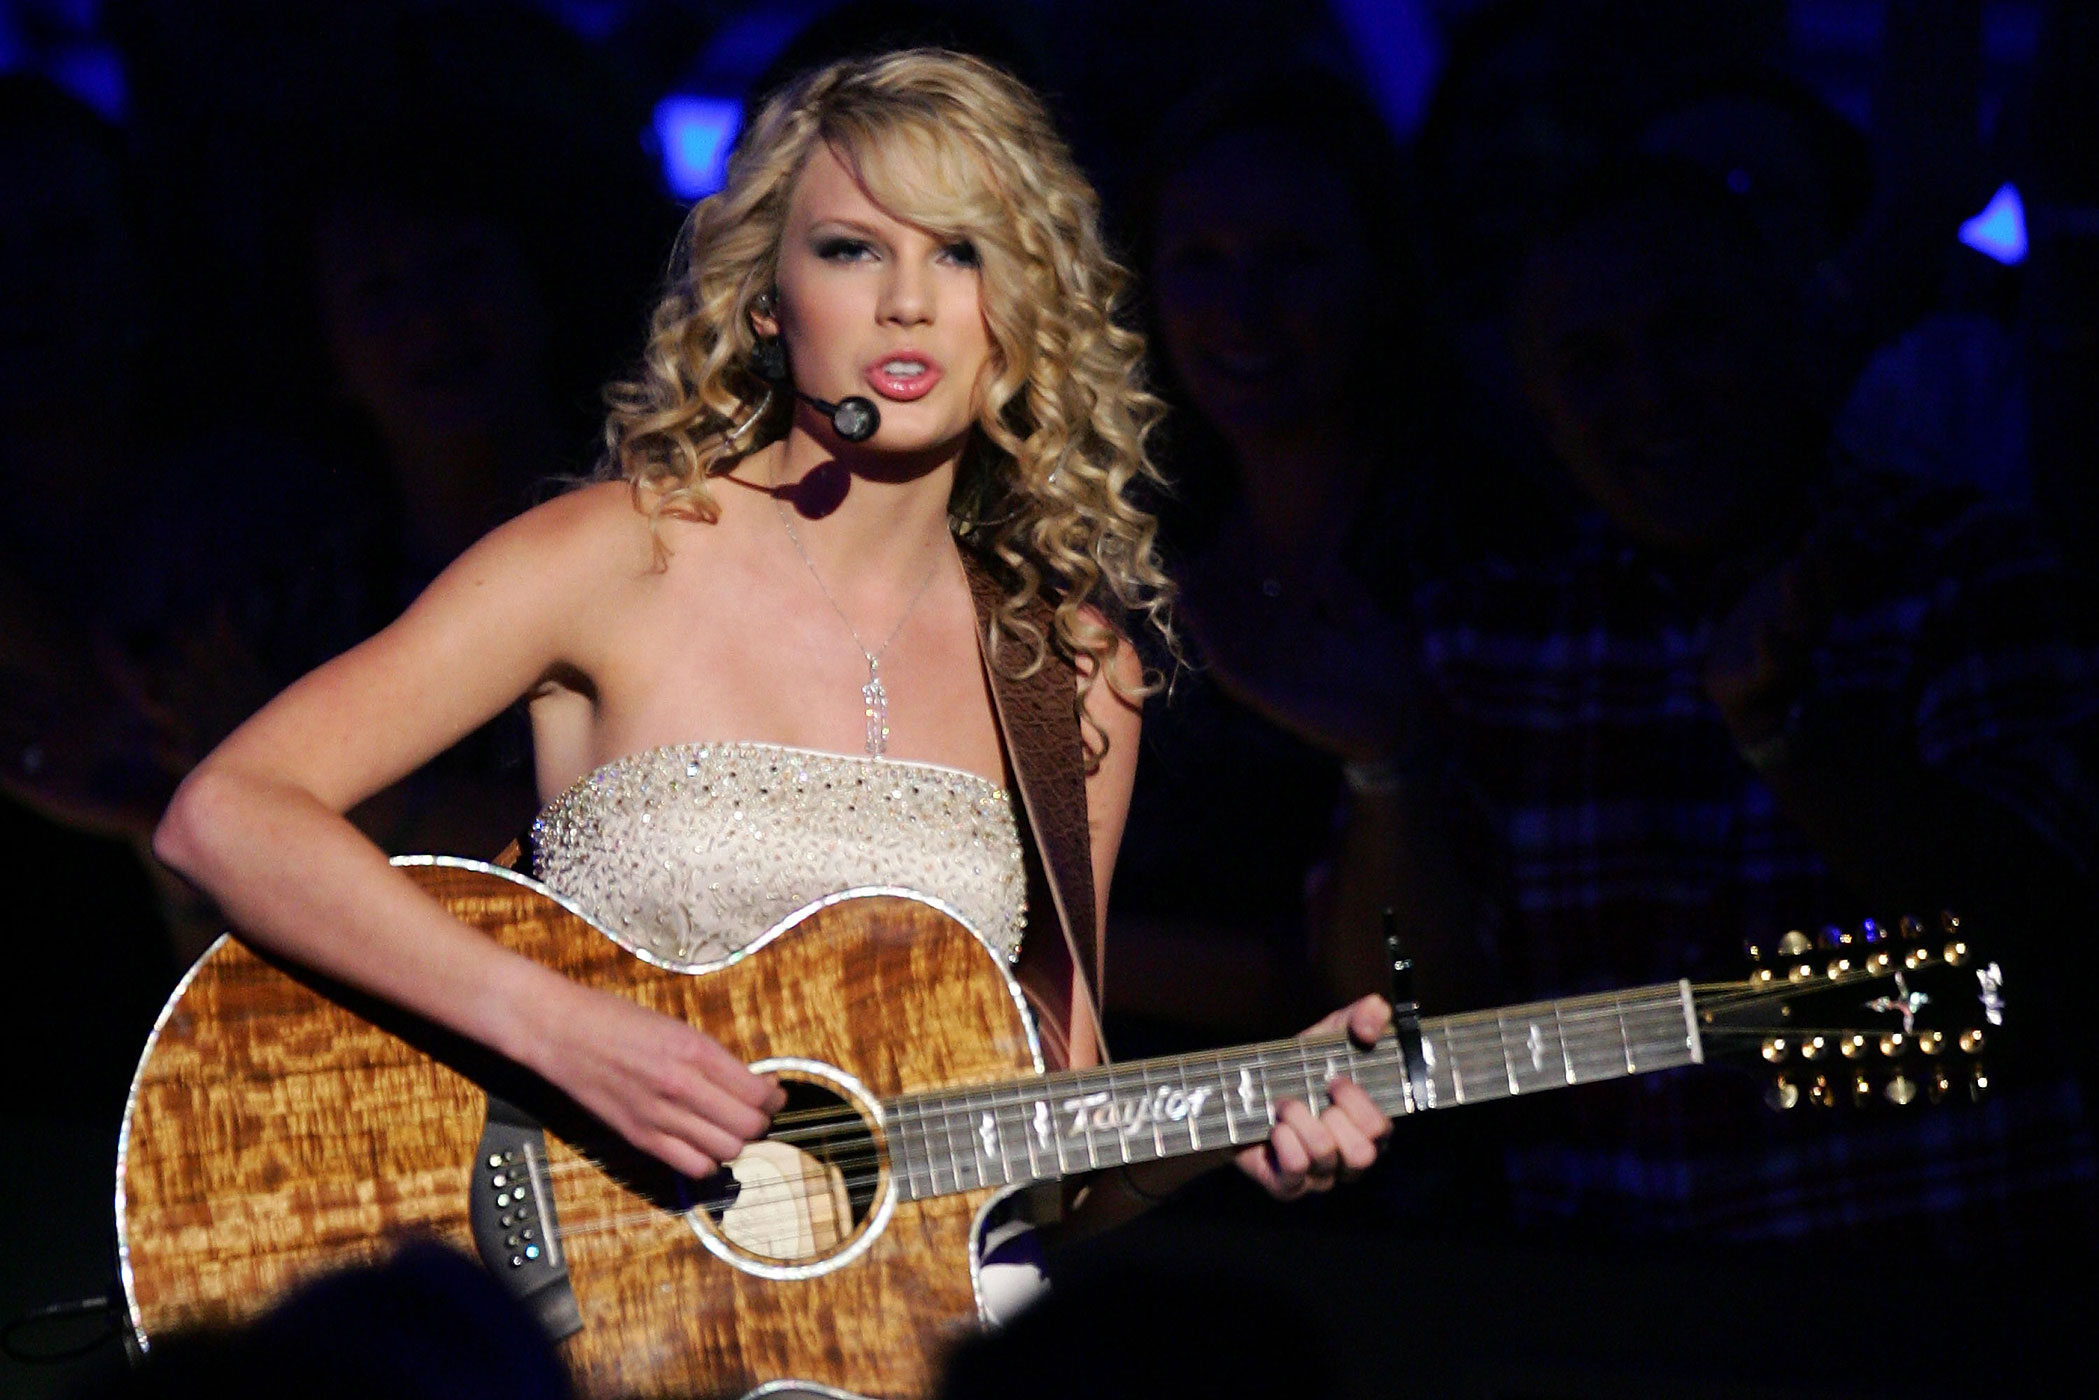 Taylor Swift performs during the 42nd Annual Academy Of Country Music Awards held at the MGM Grand Garden Arena in Las Vegas, Nevada in 2007.